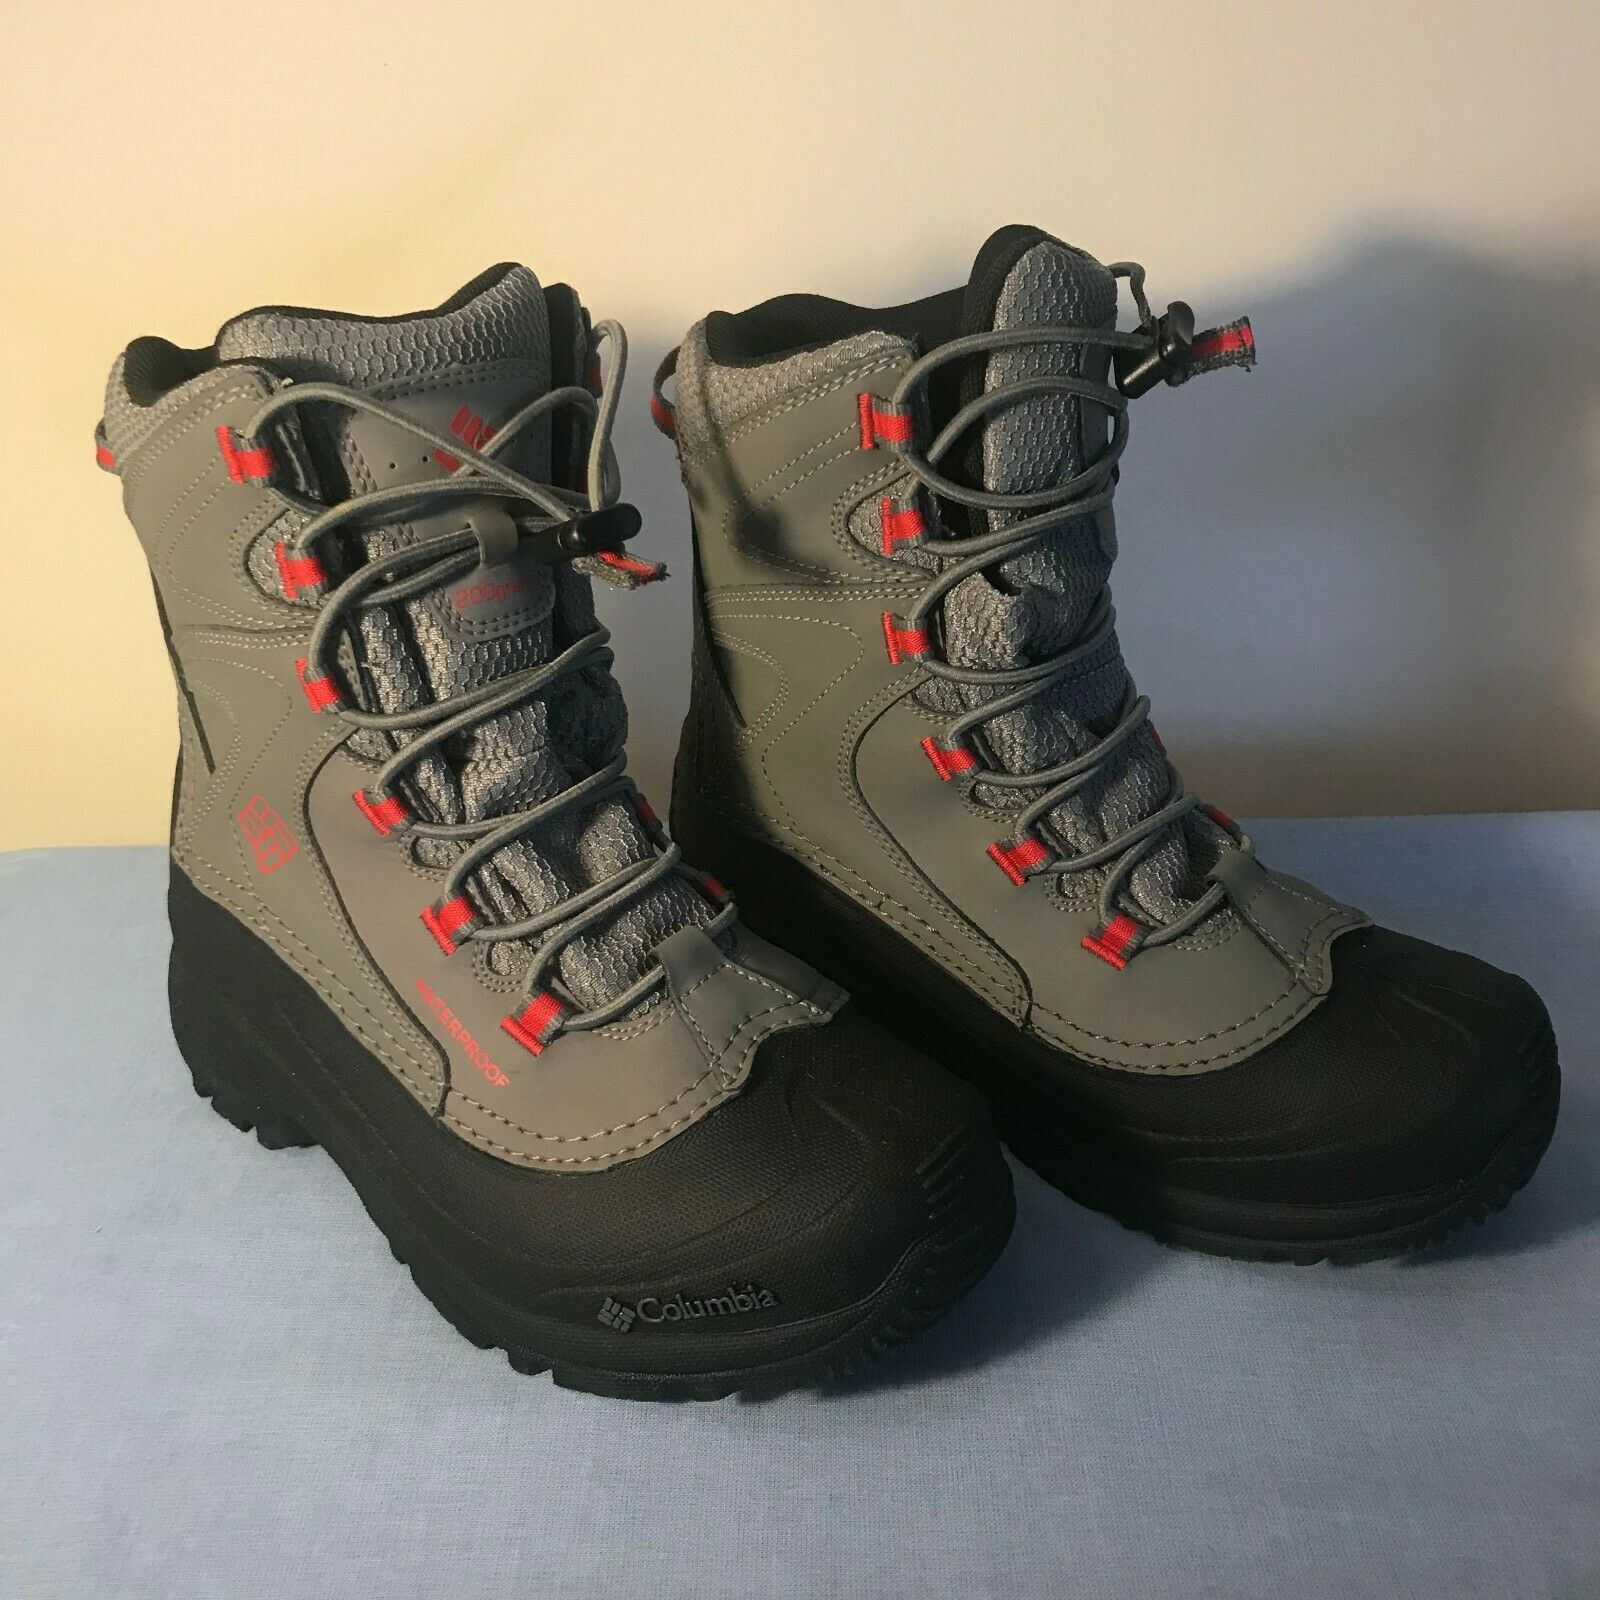 Columbia Snow Boots Bugaboot II Winter Insulated 200 Grams Women 4 US Pac Boot